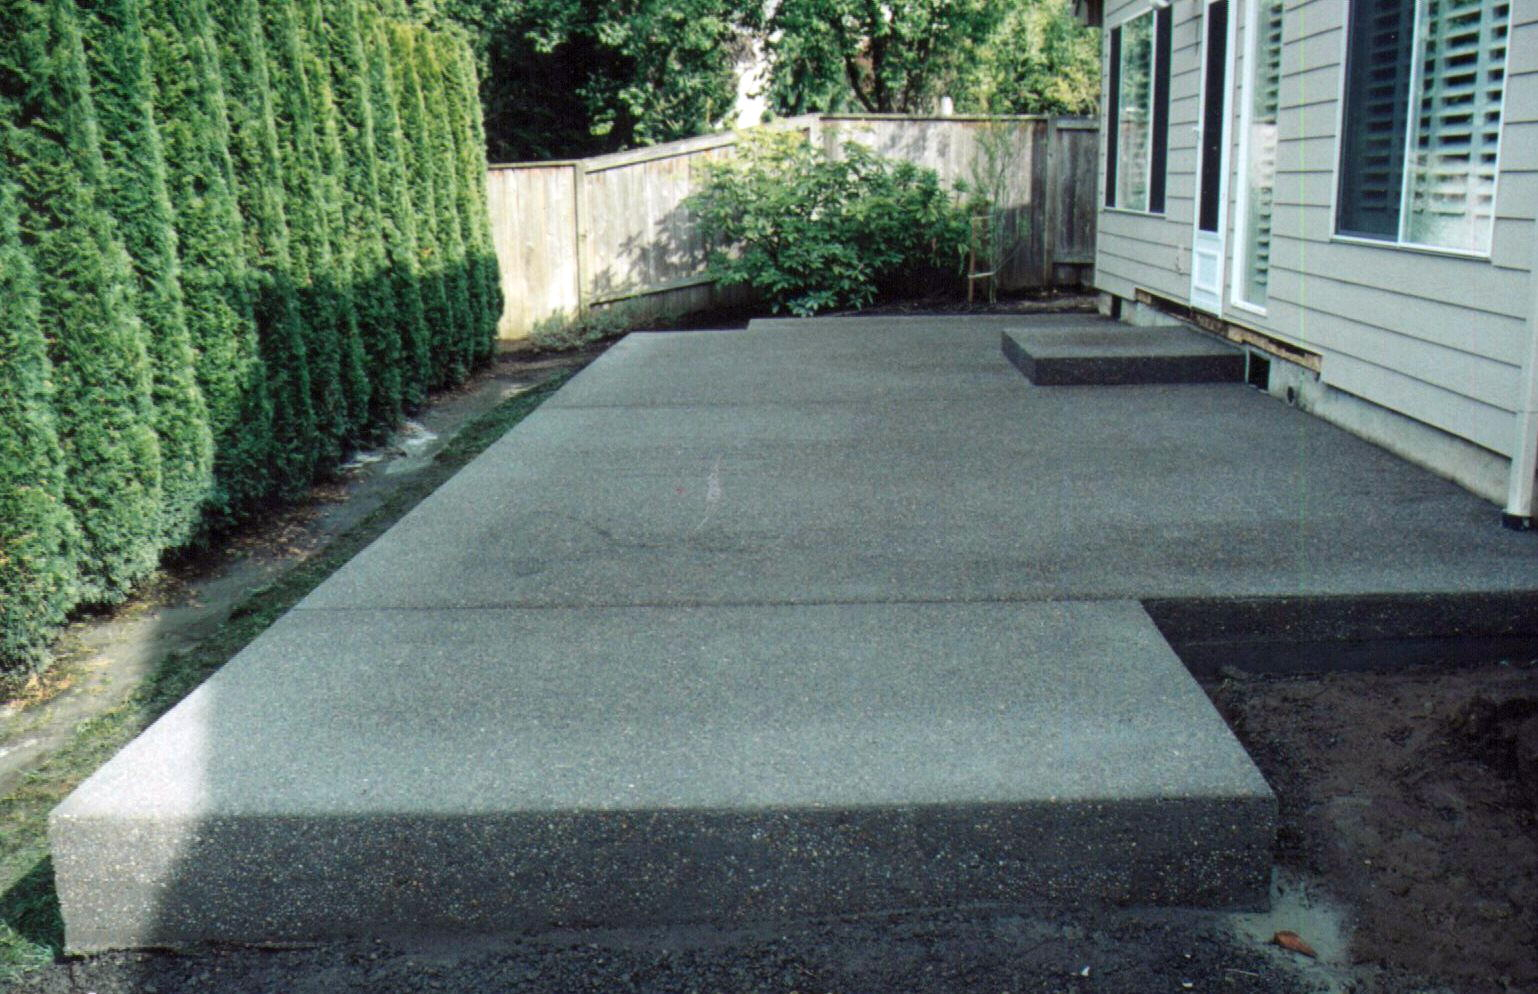 Concrete Backyard Plan Ideas Patio Backyard Porch Patio Backyard Porch with Cement Ideas For Backyard